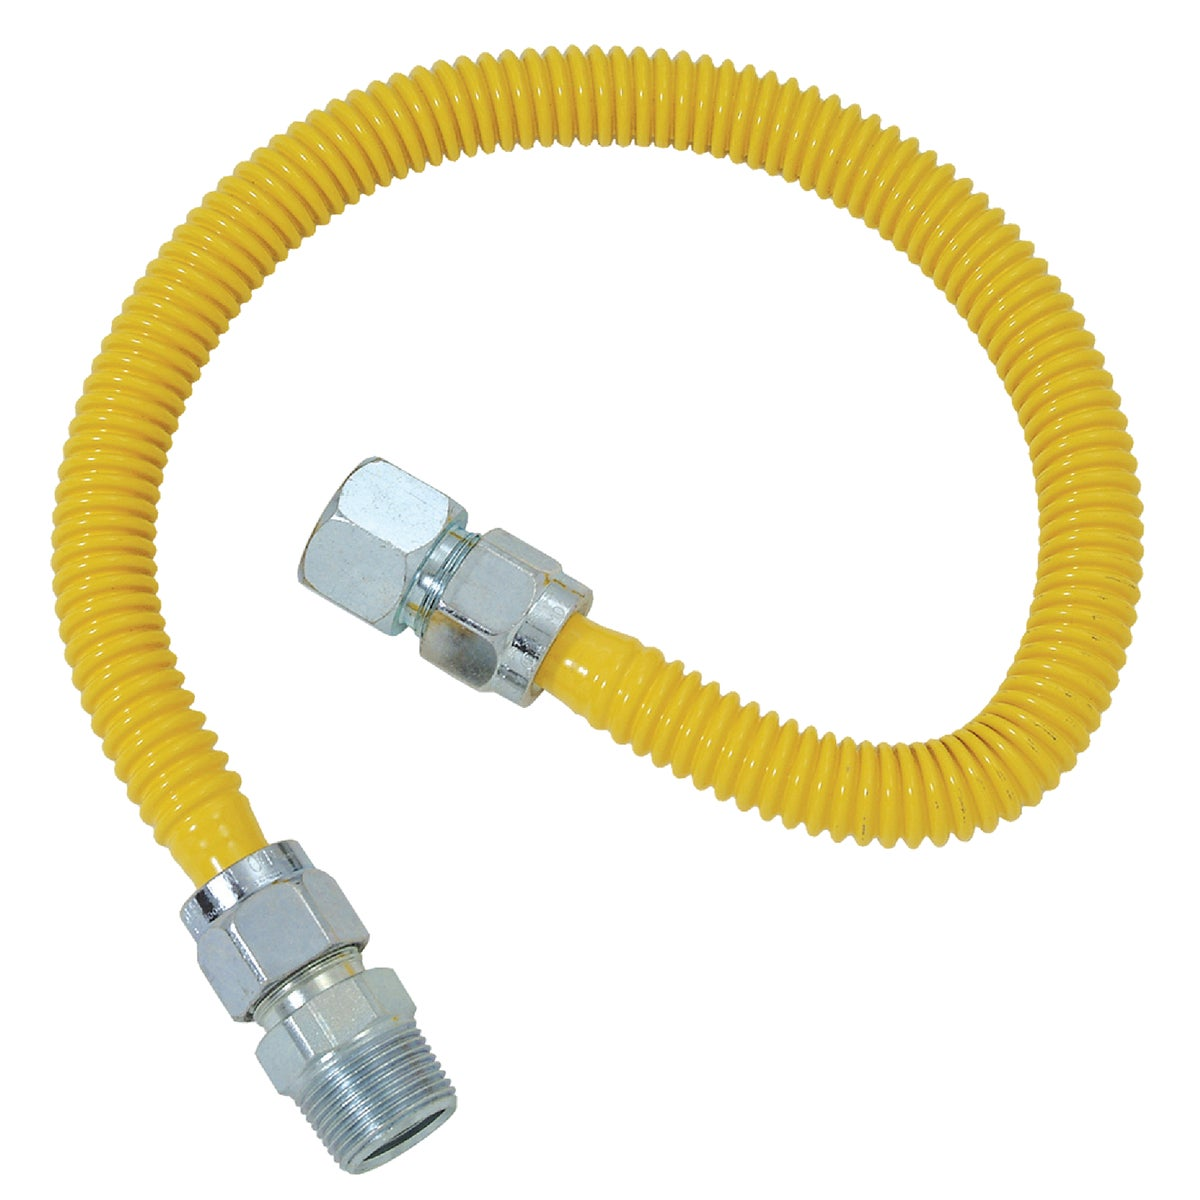 5/8X48 GAS CONNECTOR - CSSC21-48P by Brass Craft